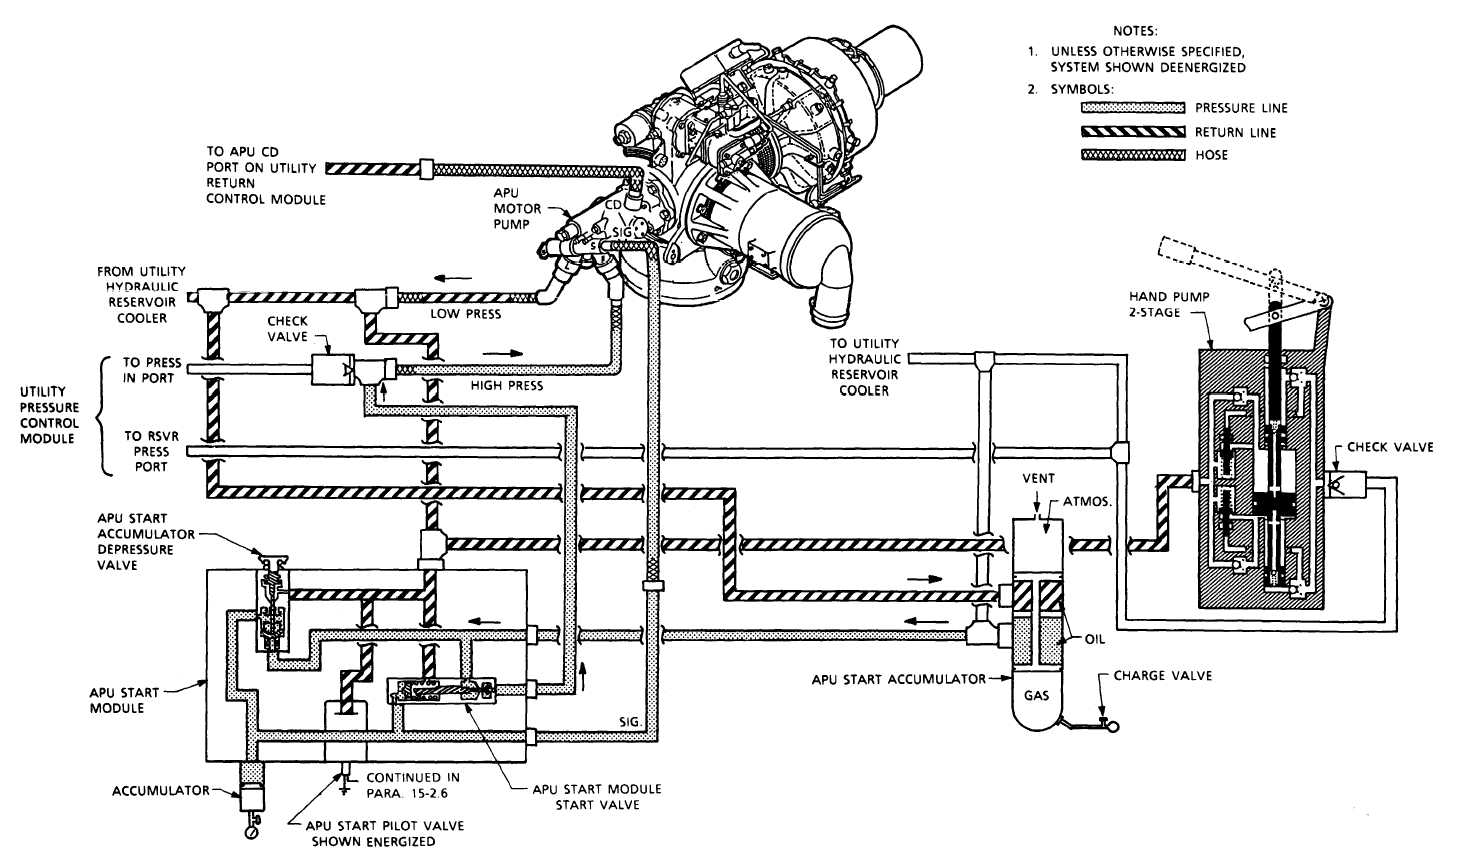 Apu Hydraulic Start Motor Flow Diagram